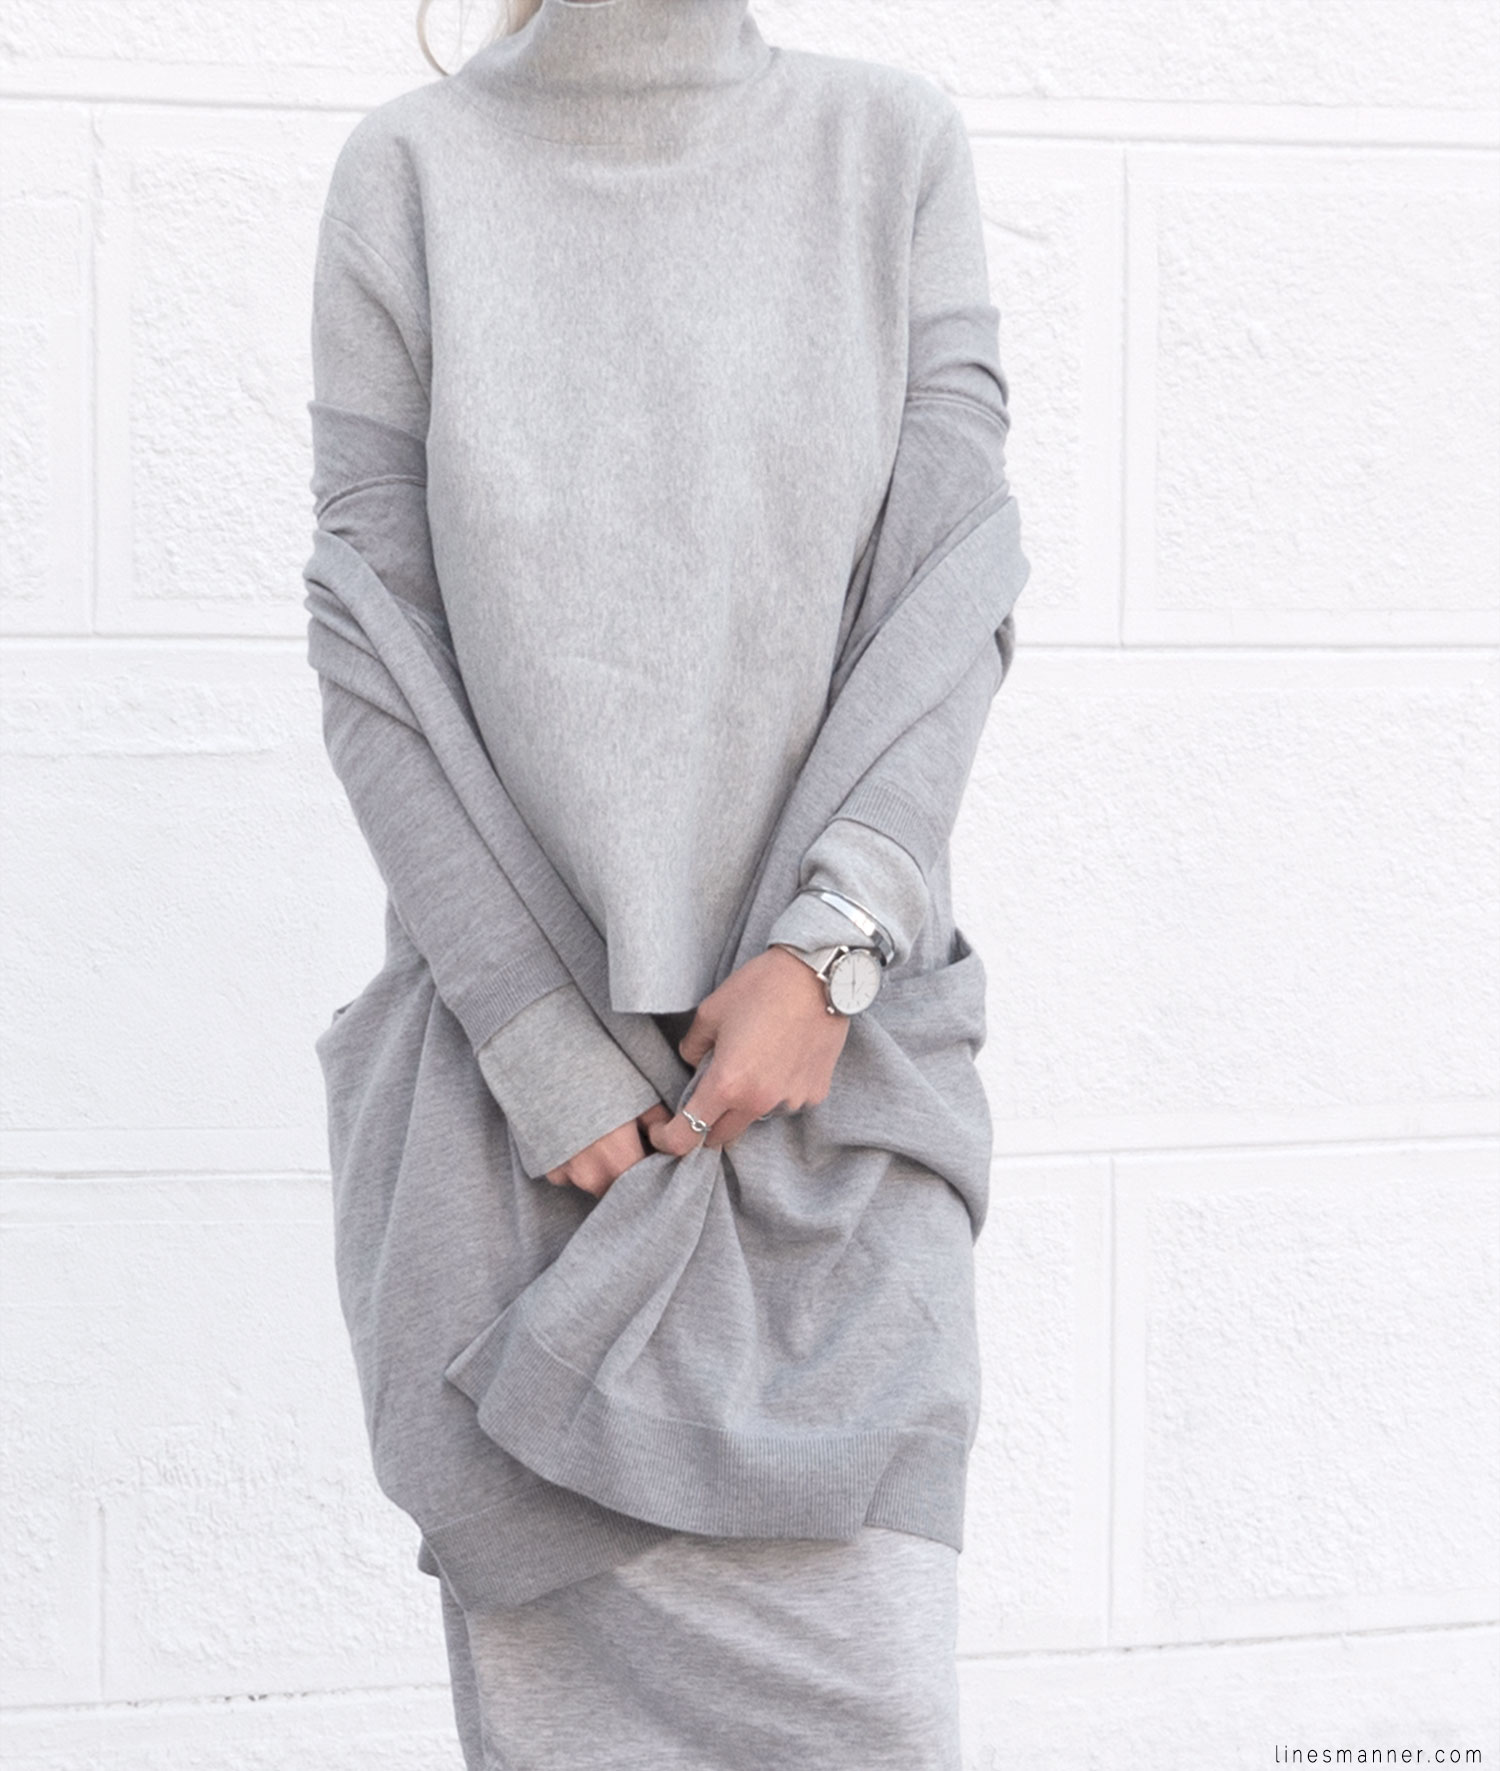 Lines-Manner-Outfit-Grey_on_grey-All_grey-Simplicty-Relaxed-Casual-Textures-Essential-Details-Staples-Minimal-Knit-Cardigan-Coisa-Layering-7